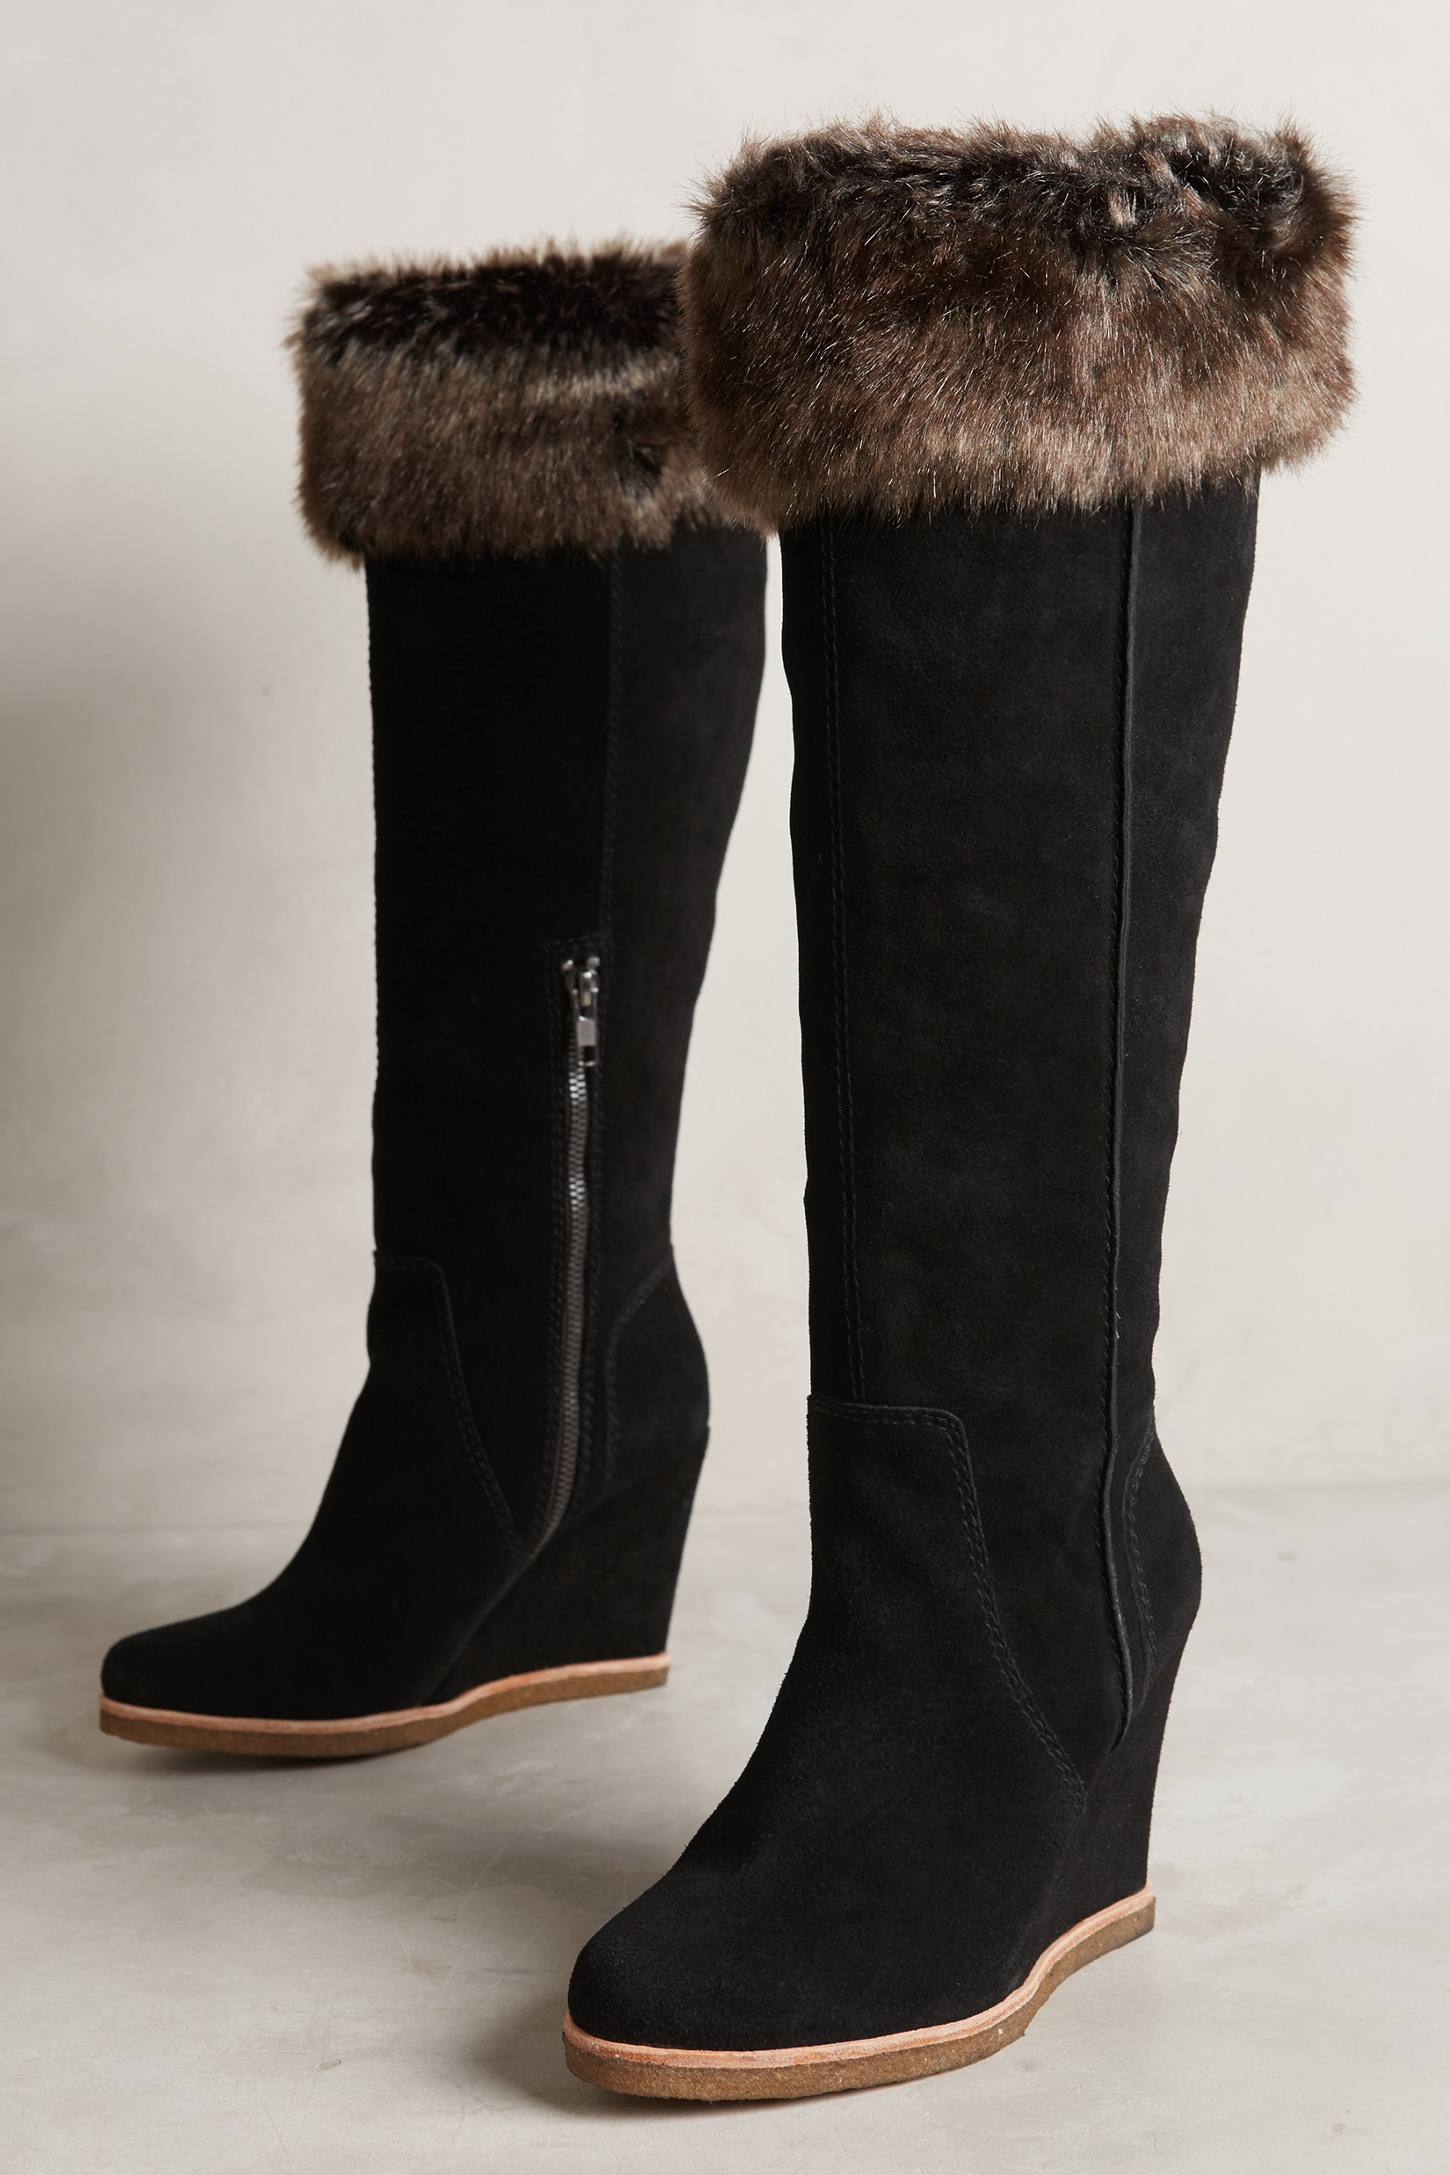 Splendid Tatum Wedge Boots